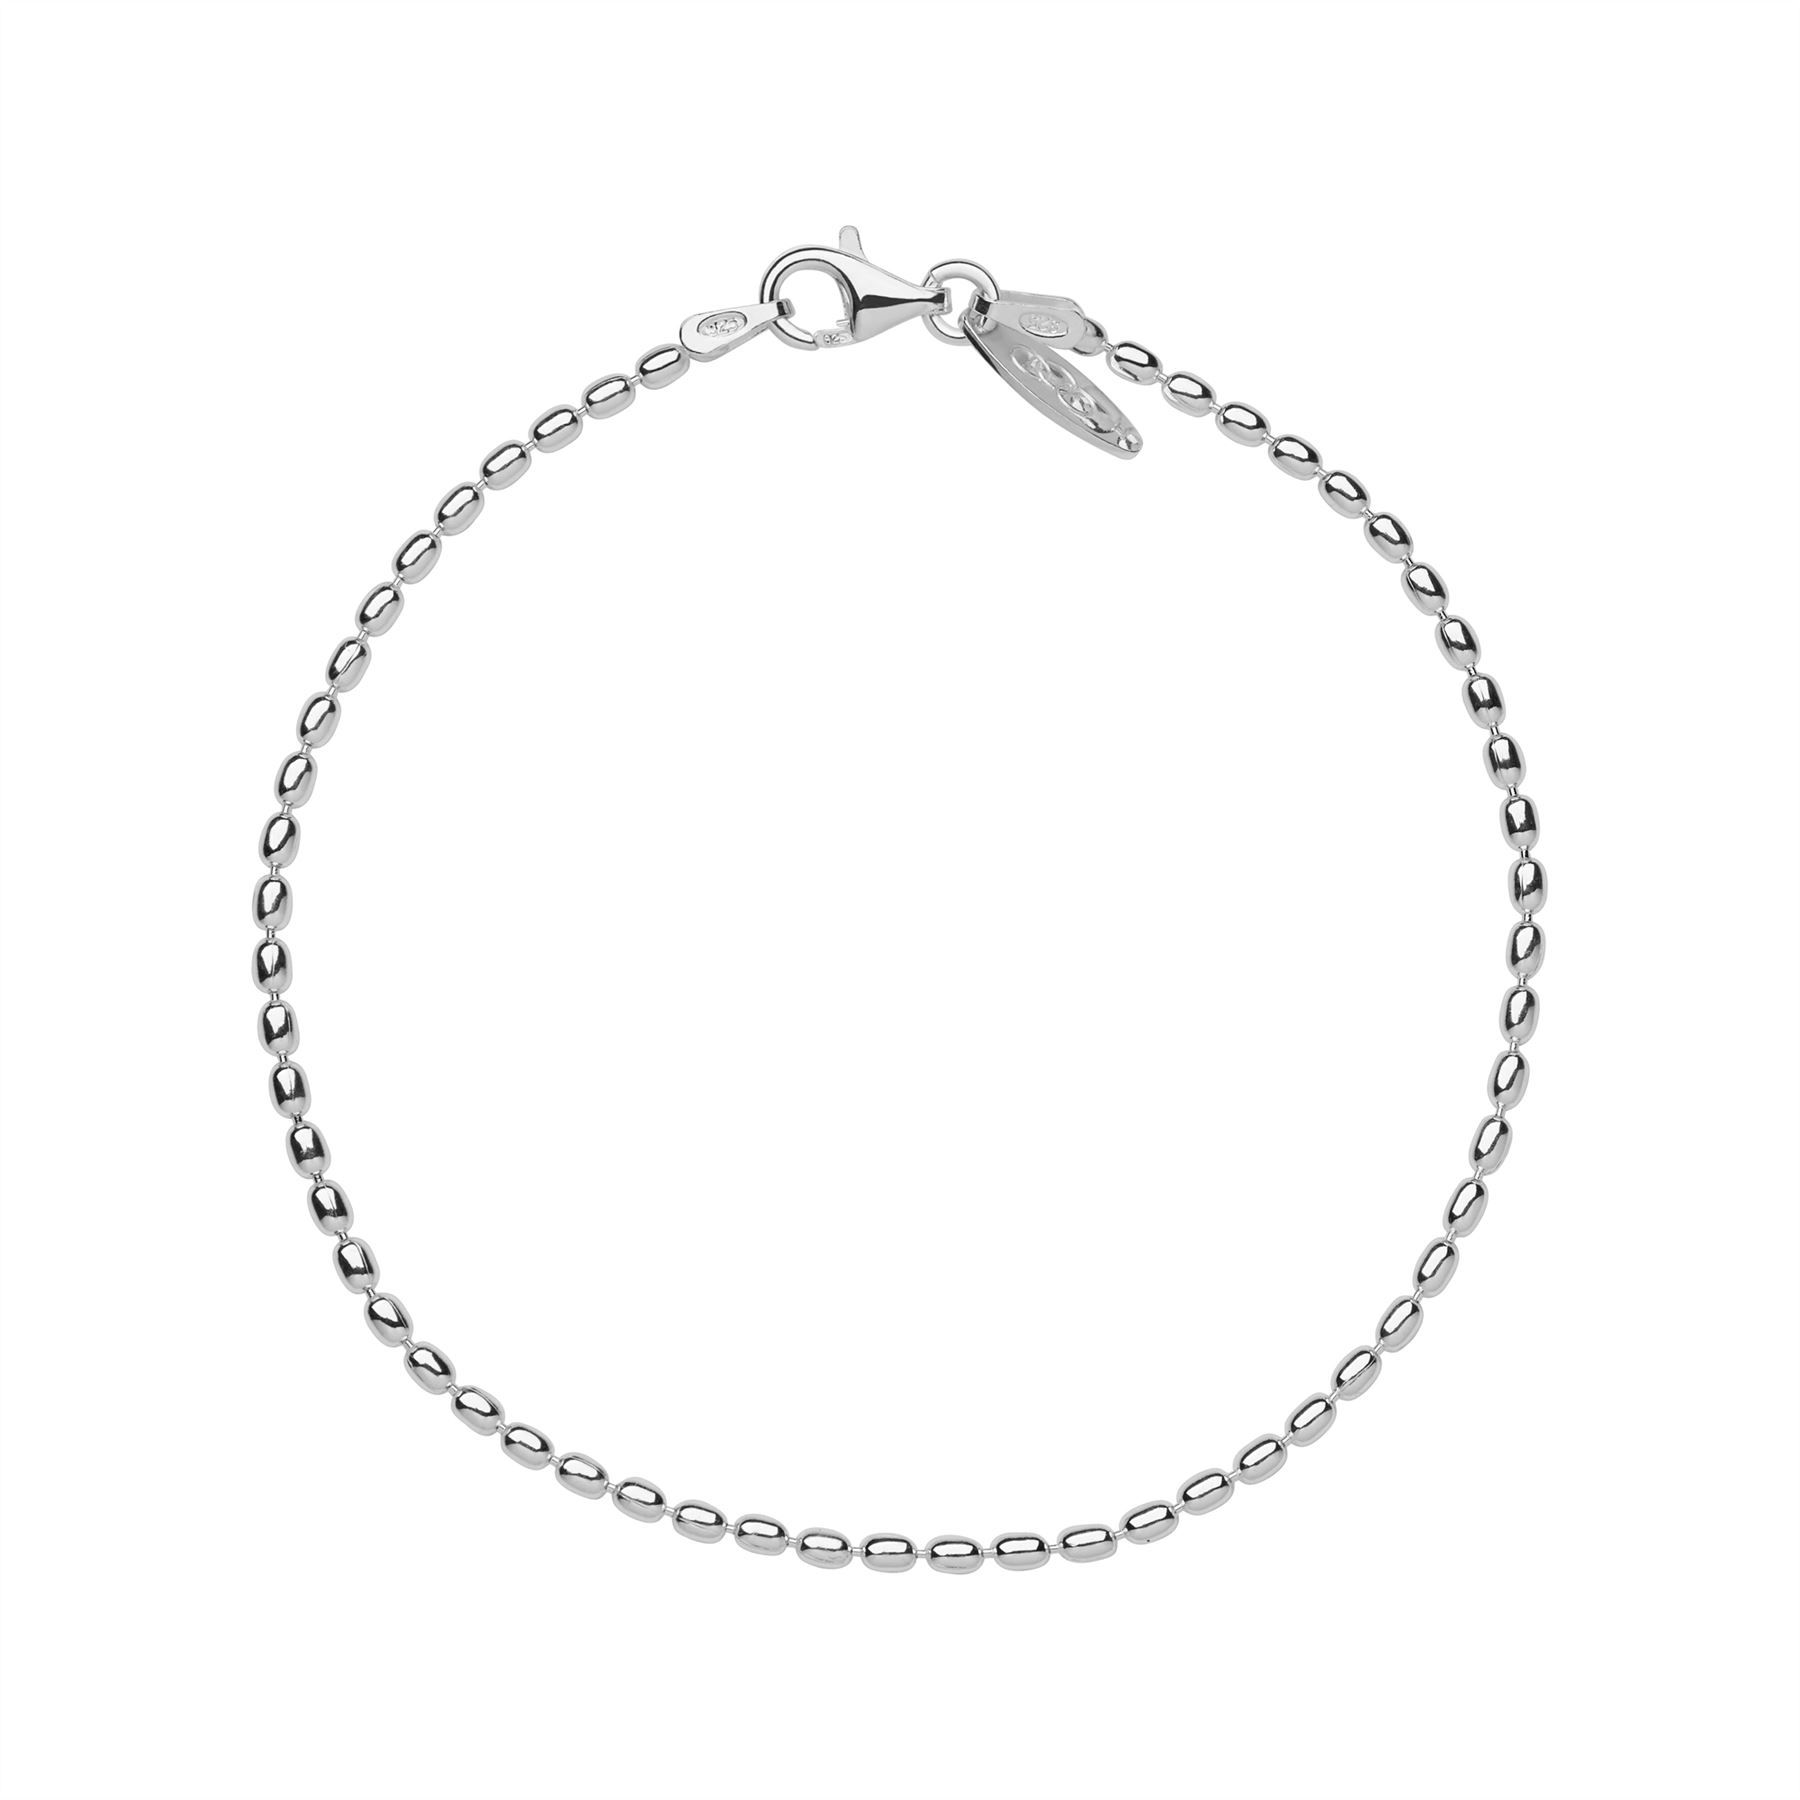 """Details about Links of London Womens Essentials Sterling Silver Oval Ball  Chain Bracelet 7.5"""" cd5cb5ed3"""